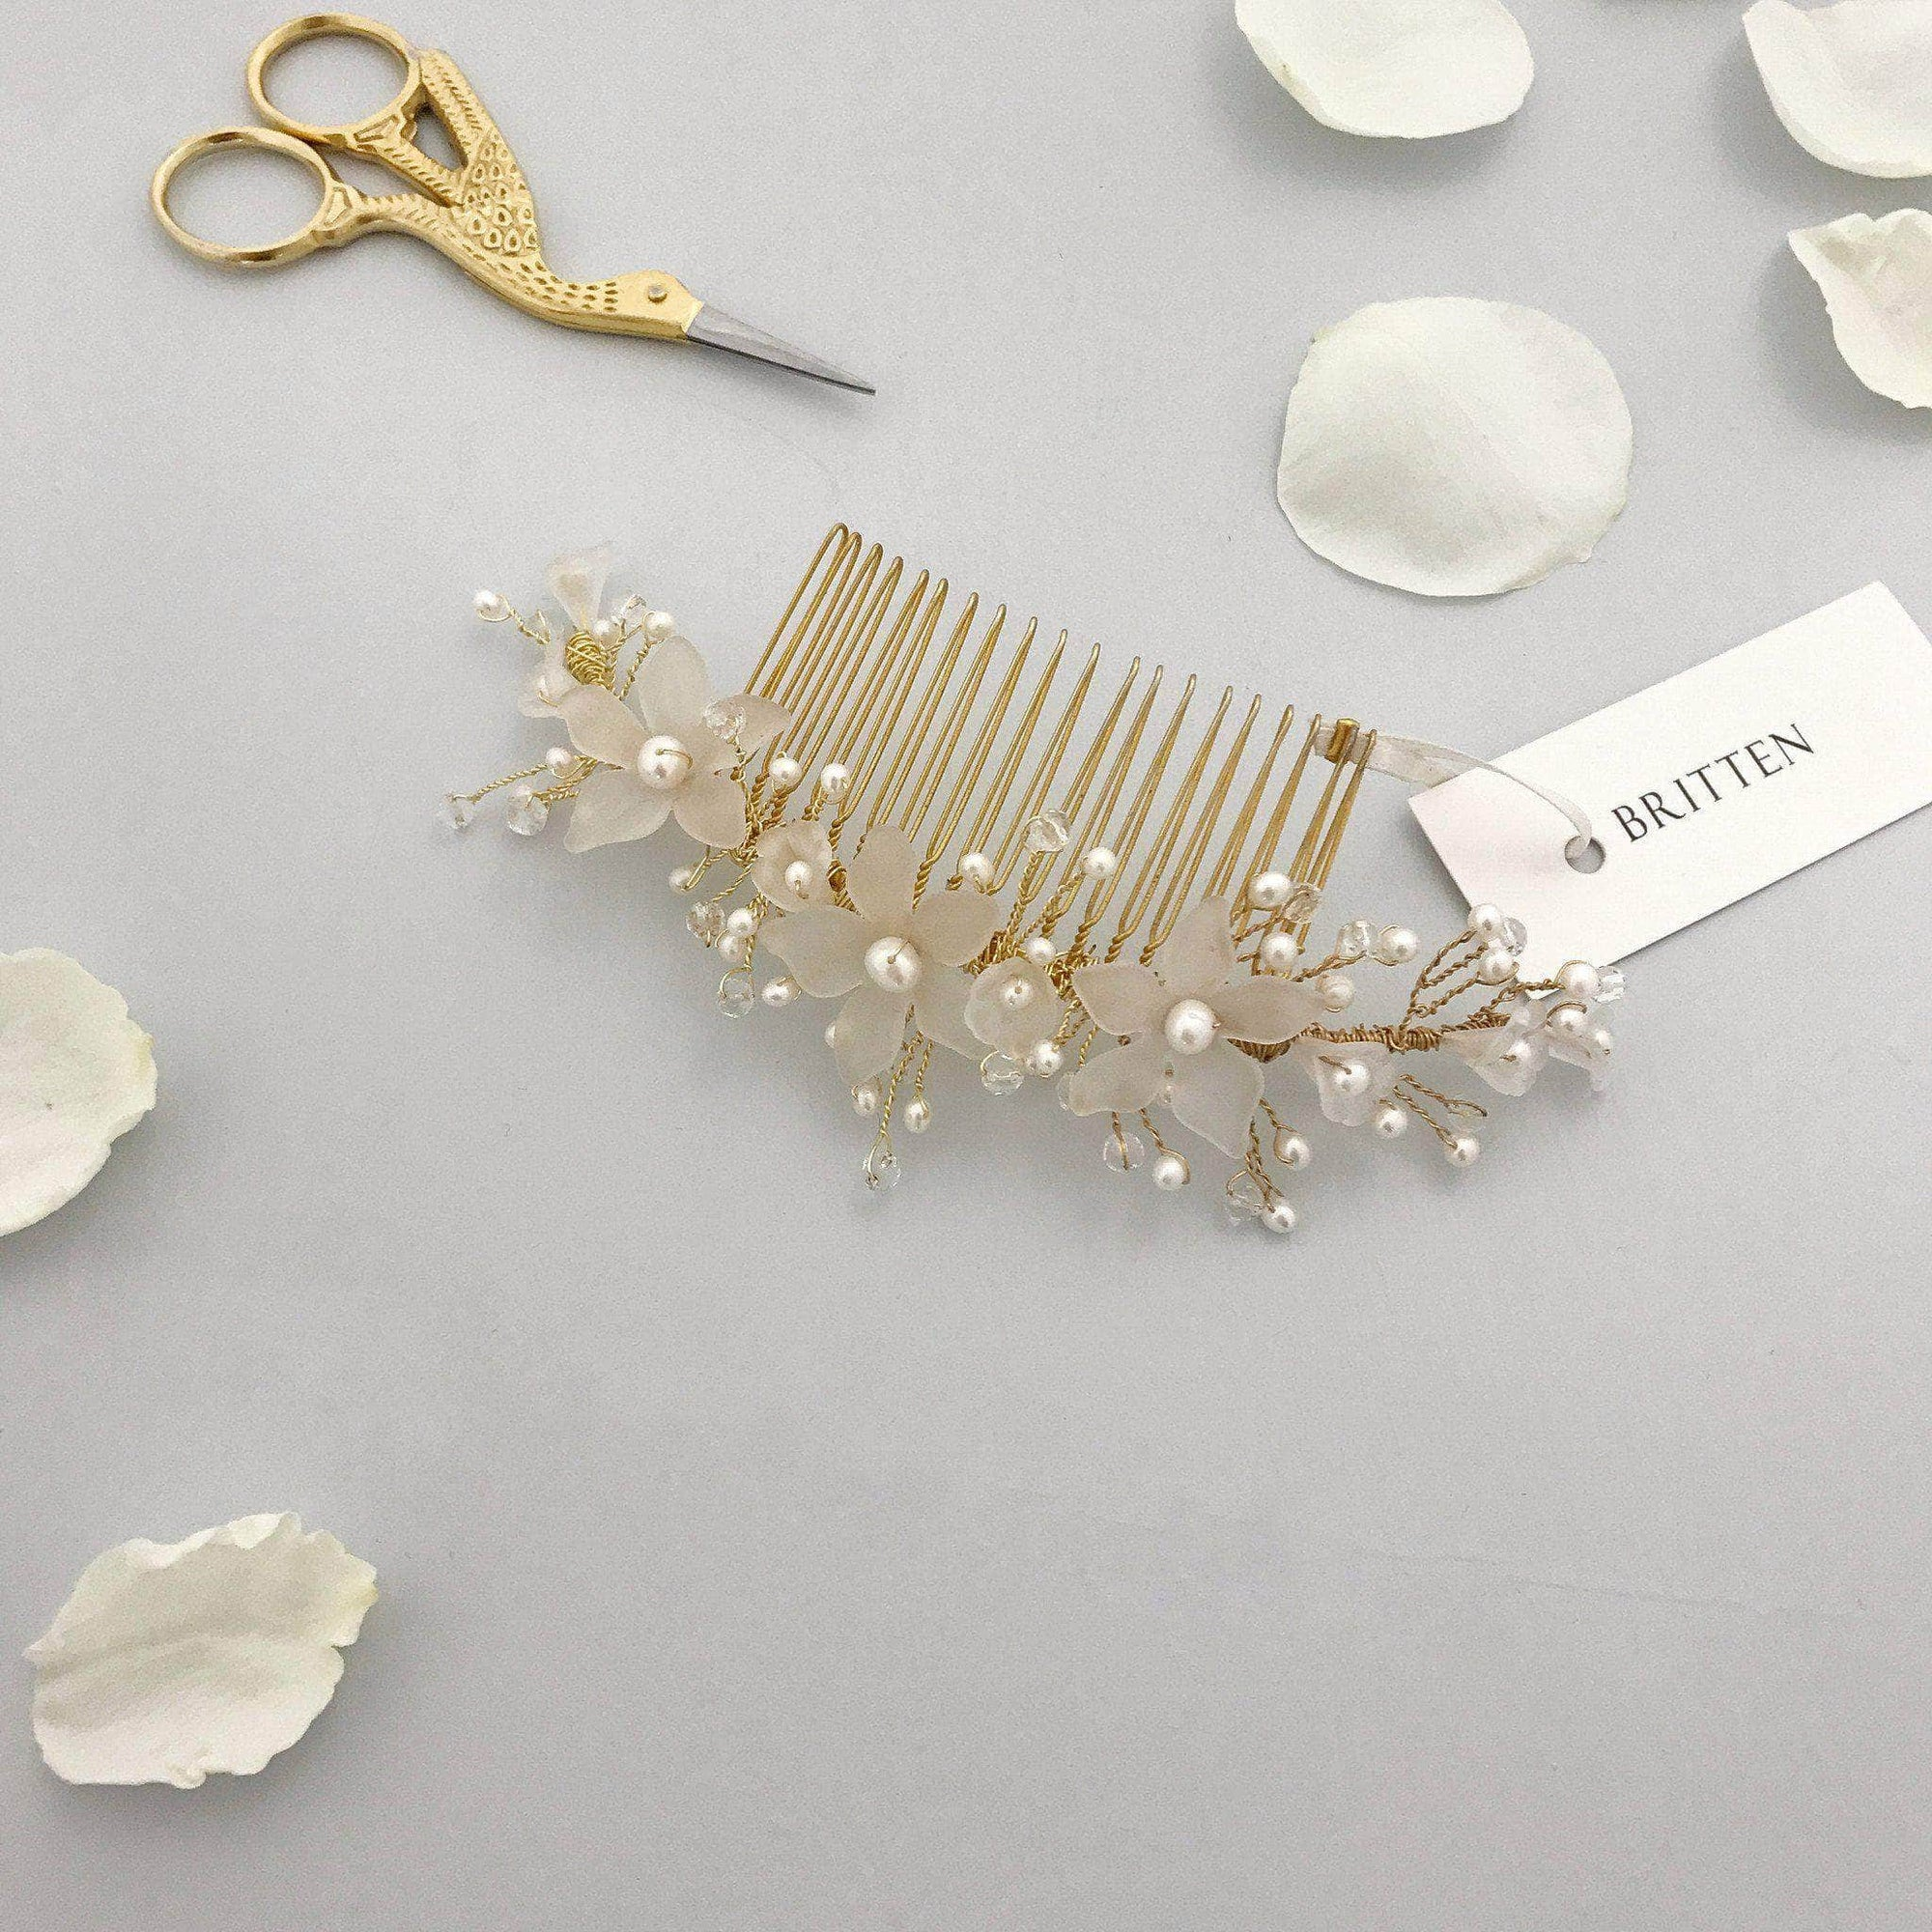 Wedding Haircomb Gold Gold wedding hair vine comb with freshwater pearls - 'Isca'